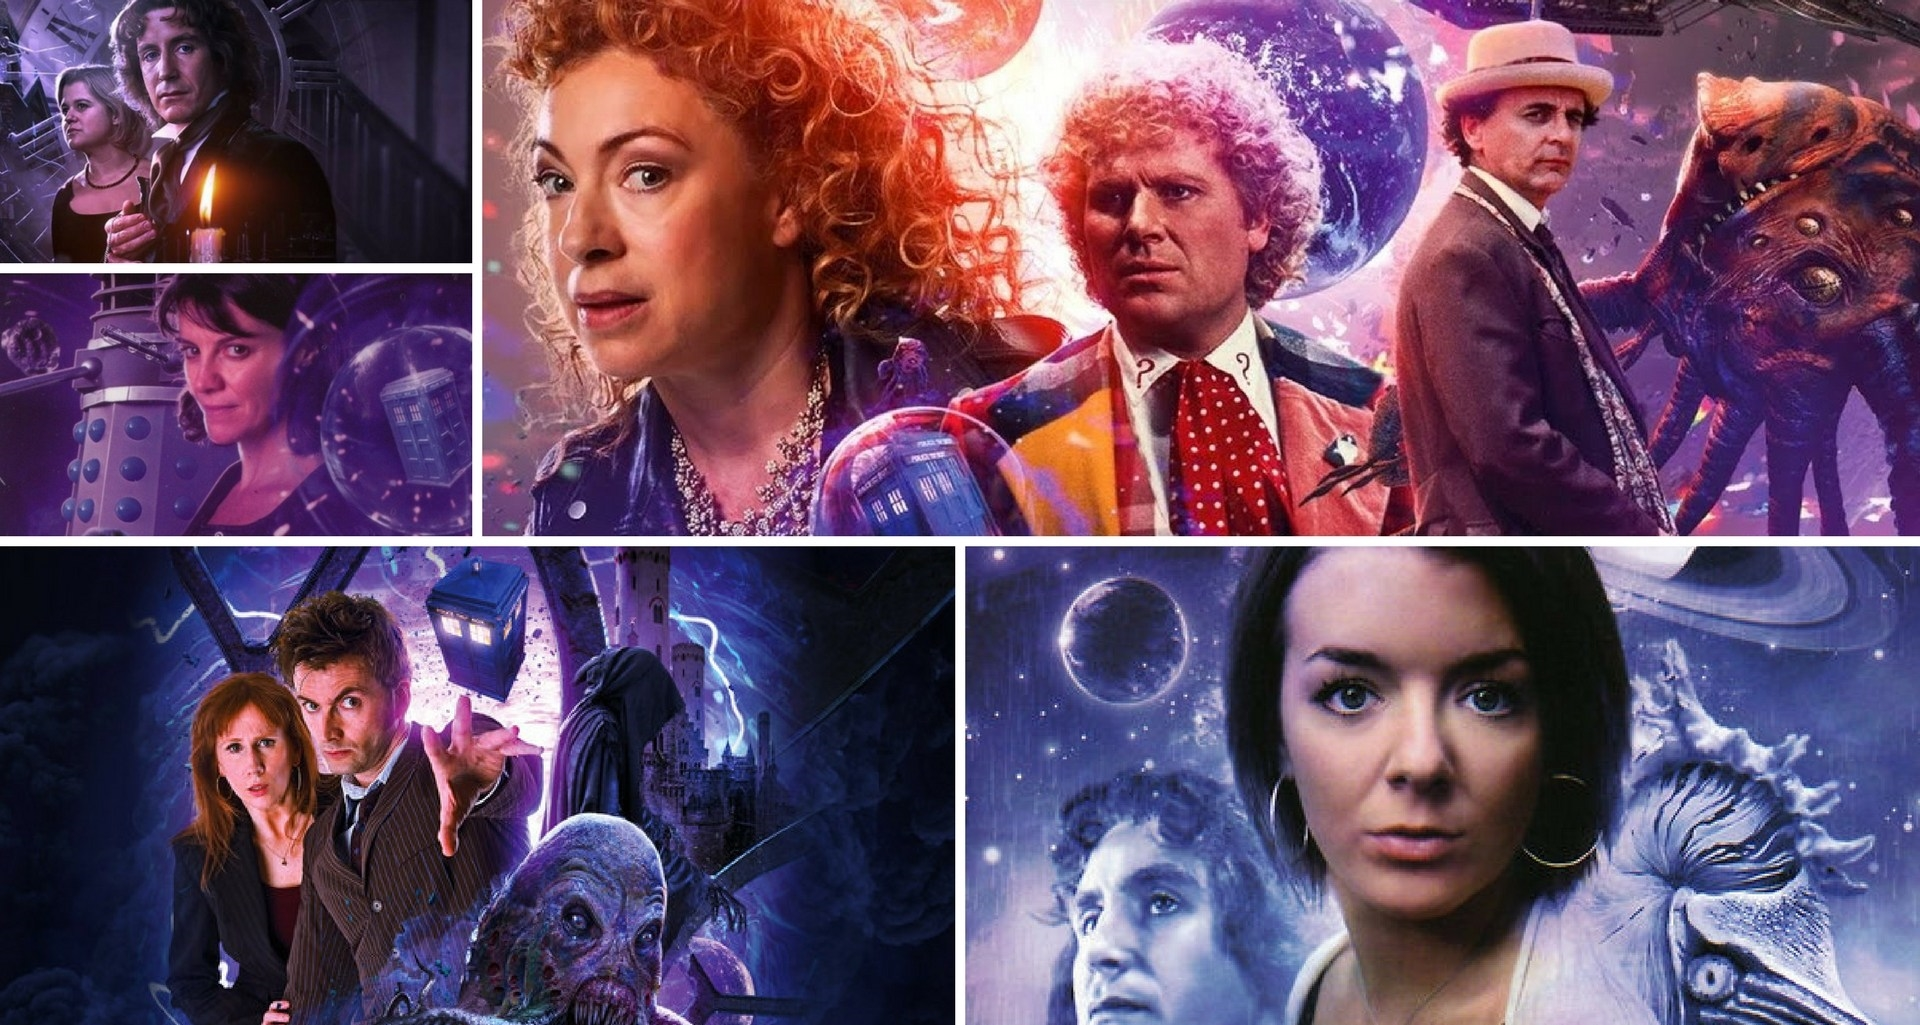 The Beginners Guide to the Women of Big Finish – The Time Ladies